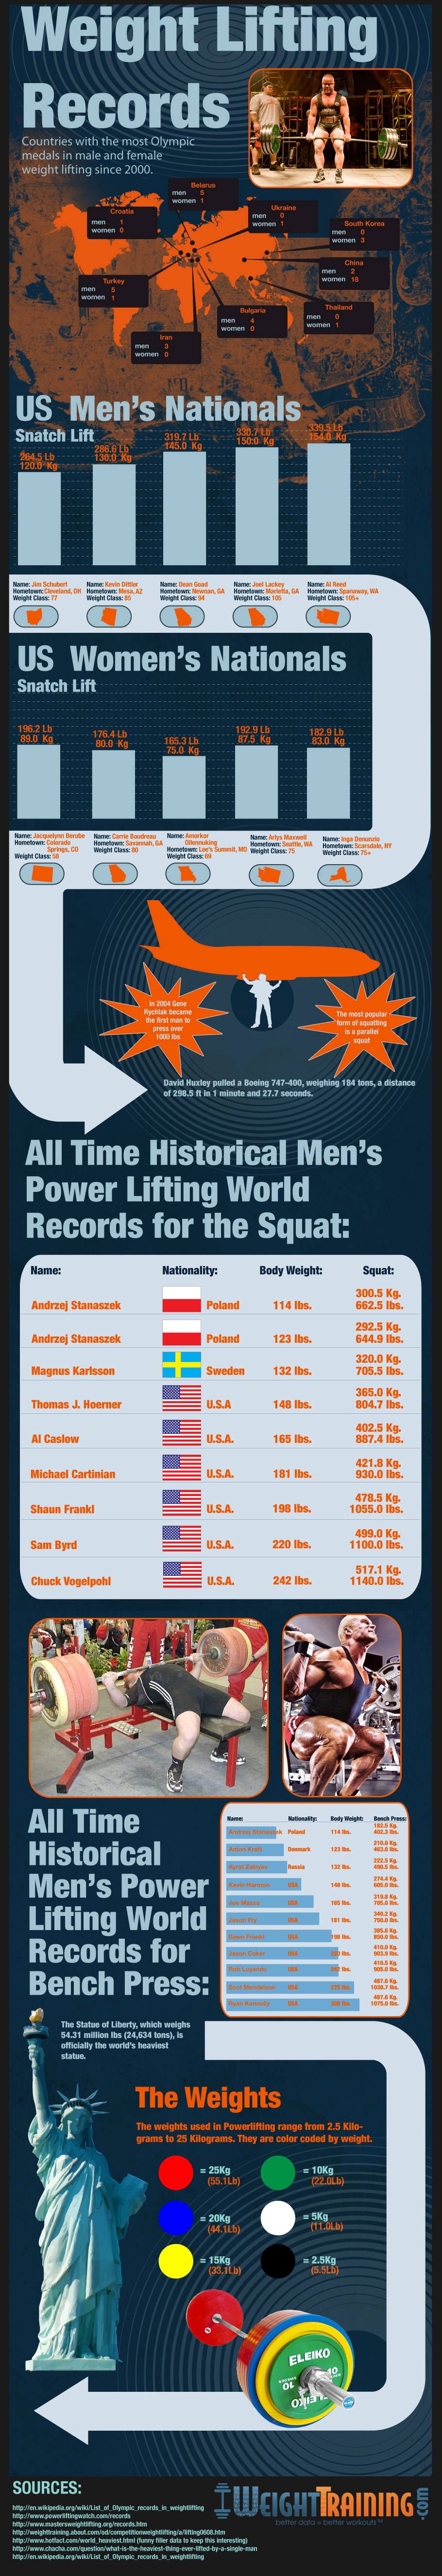 Weight Lifting Records